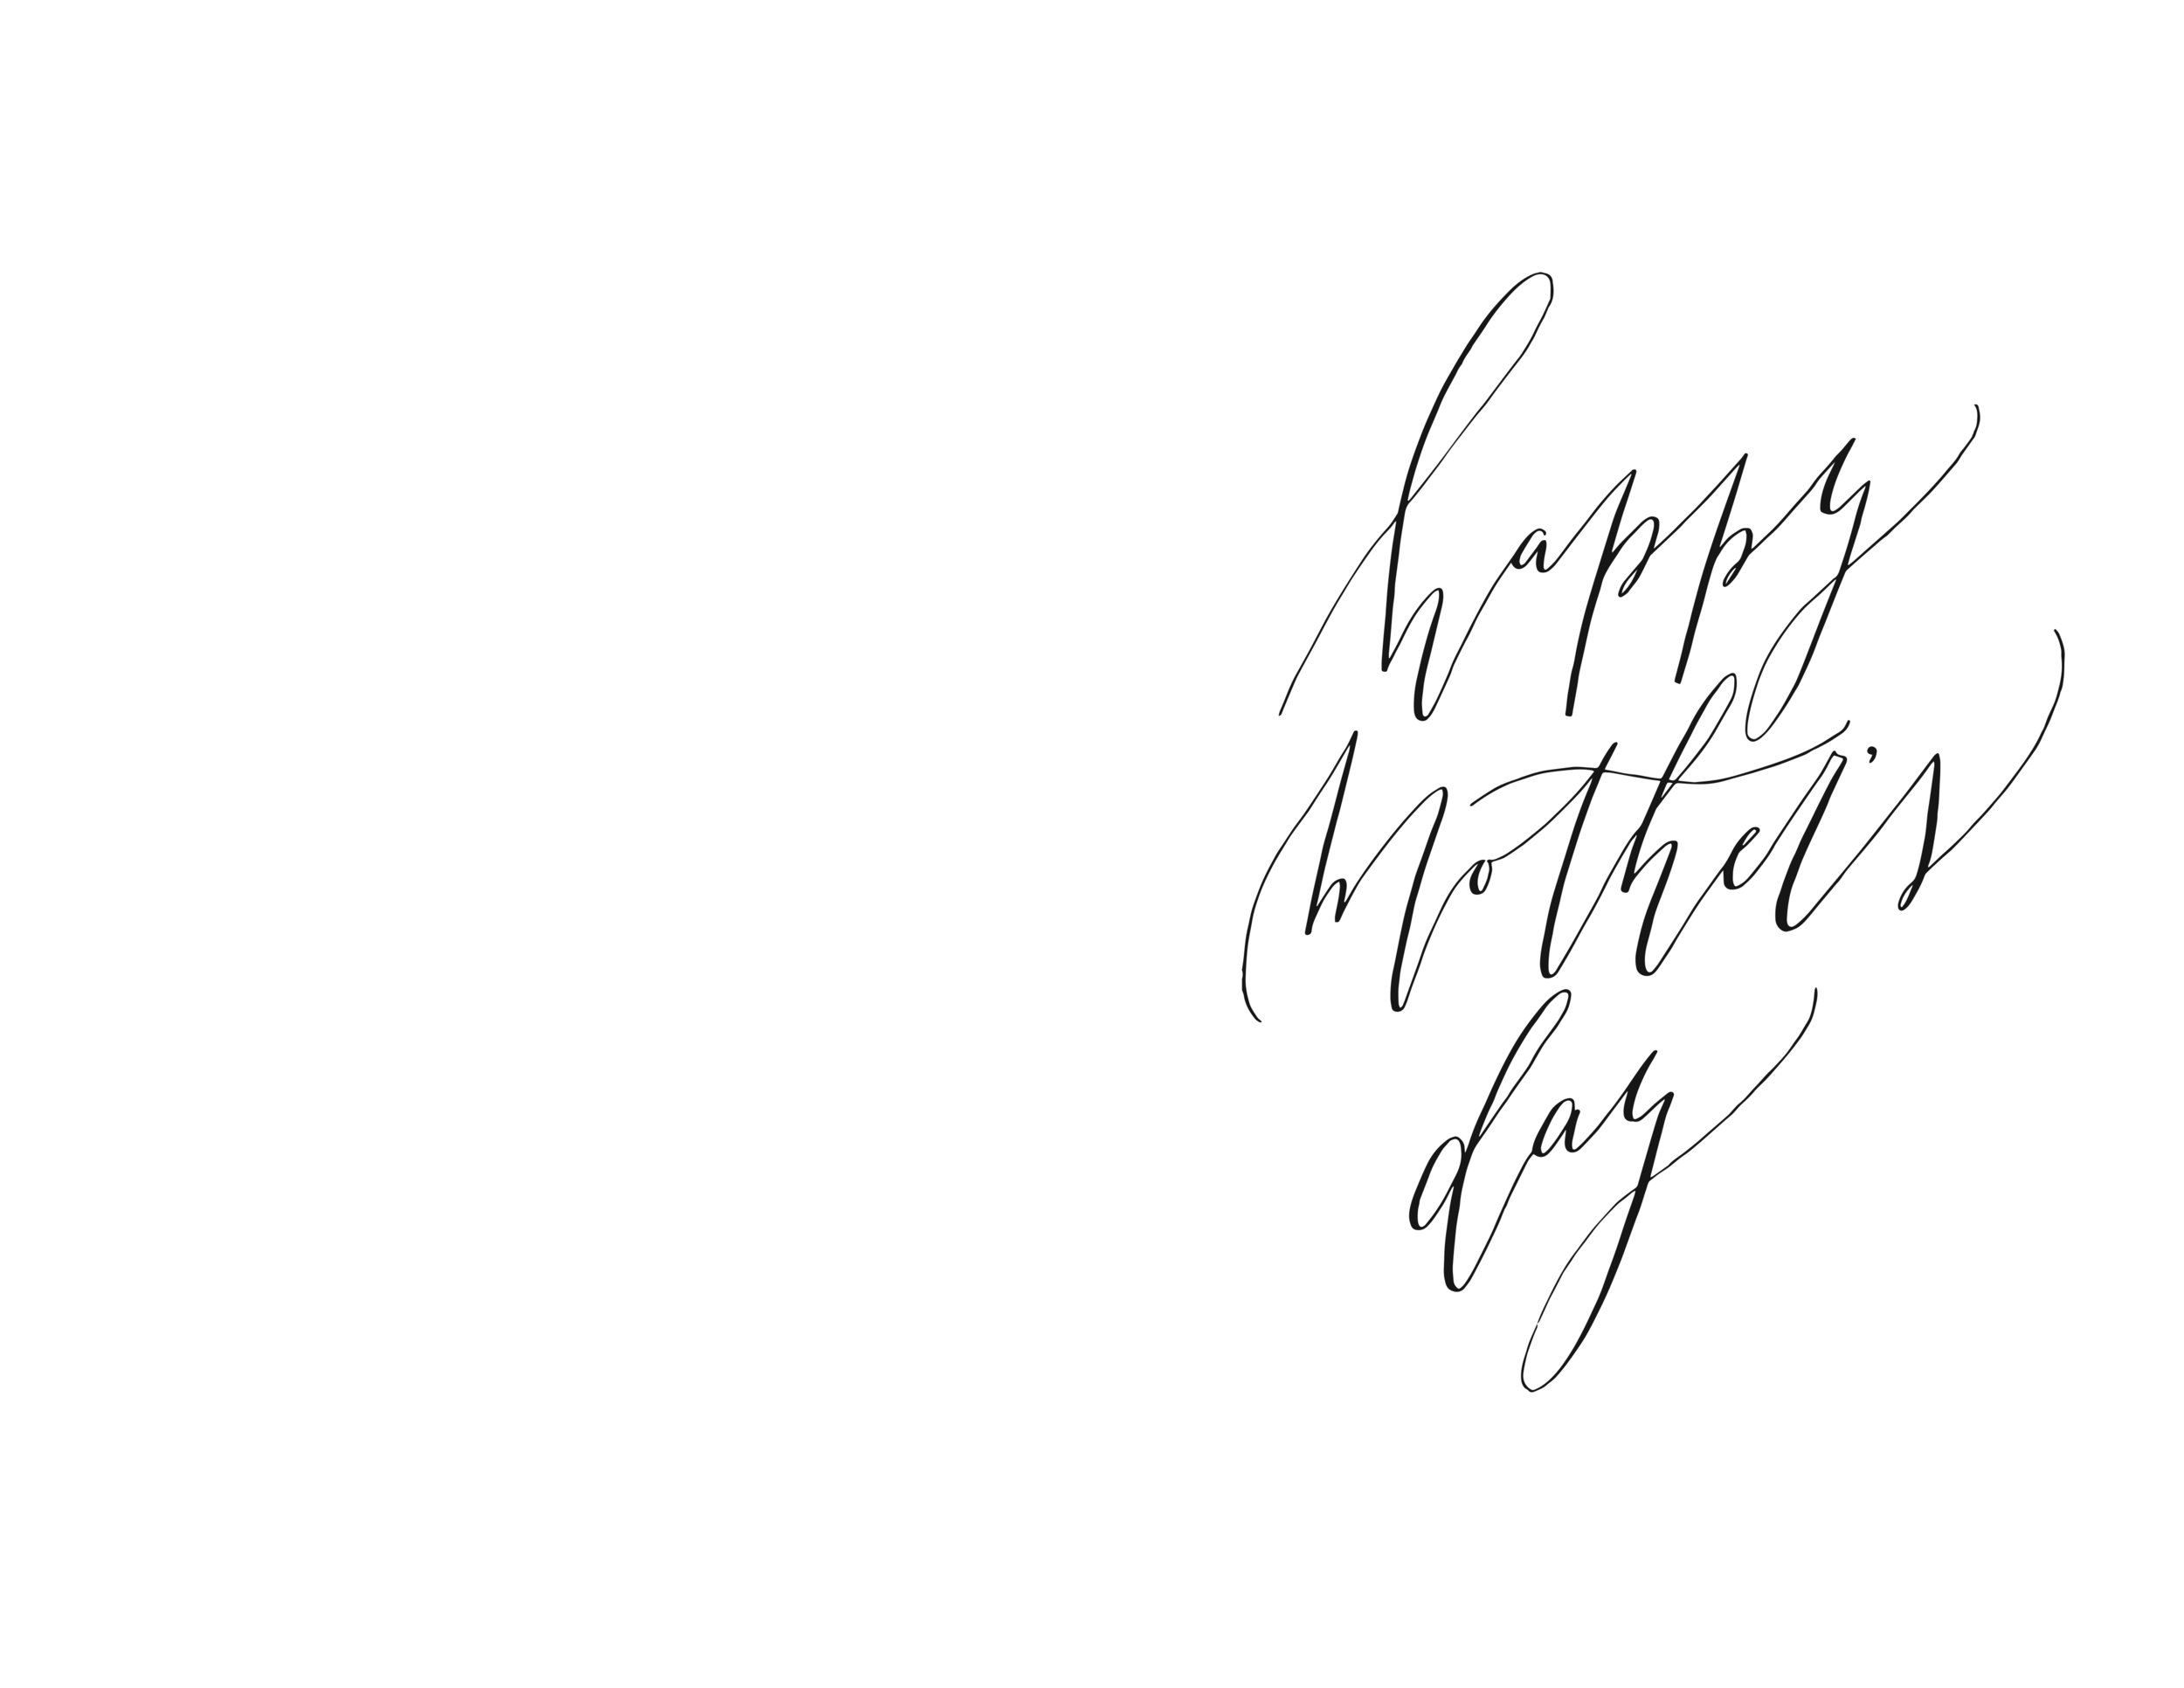 Free Printable Mothers Day Card - Calligraphy - True North Paper Co.